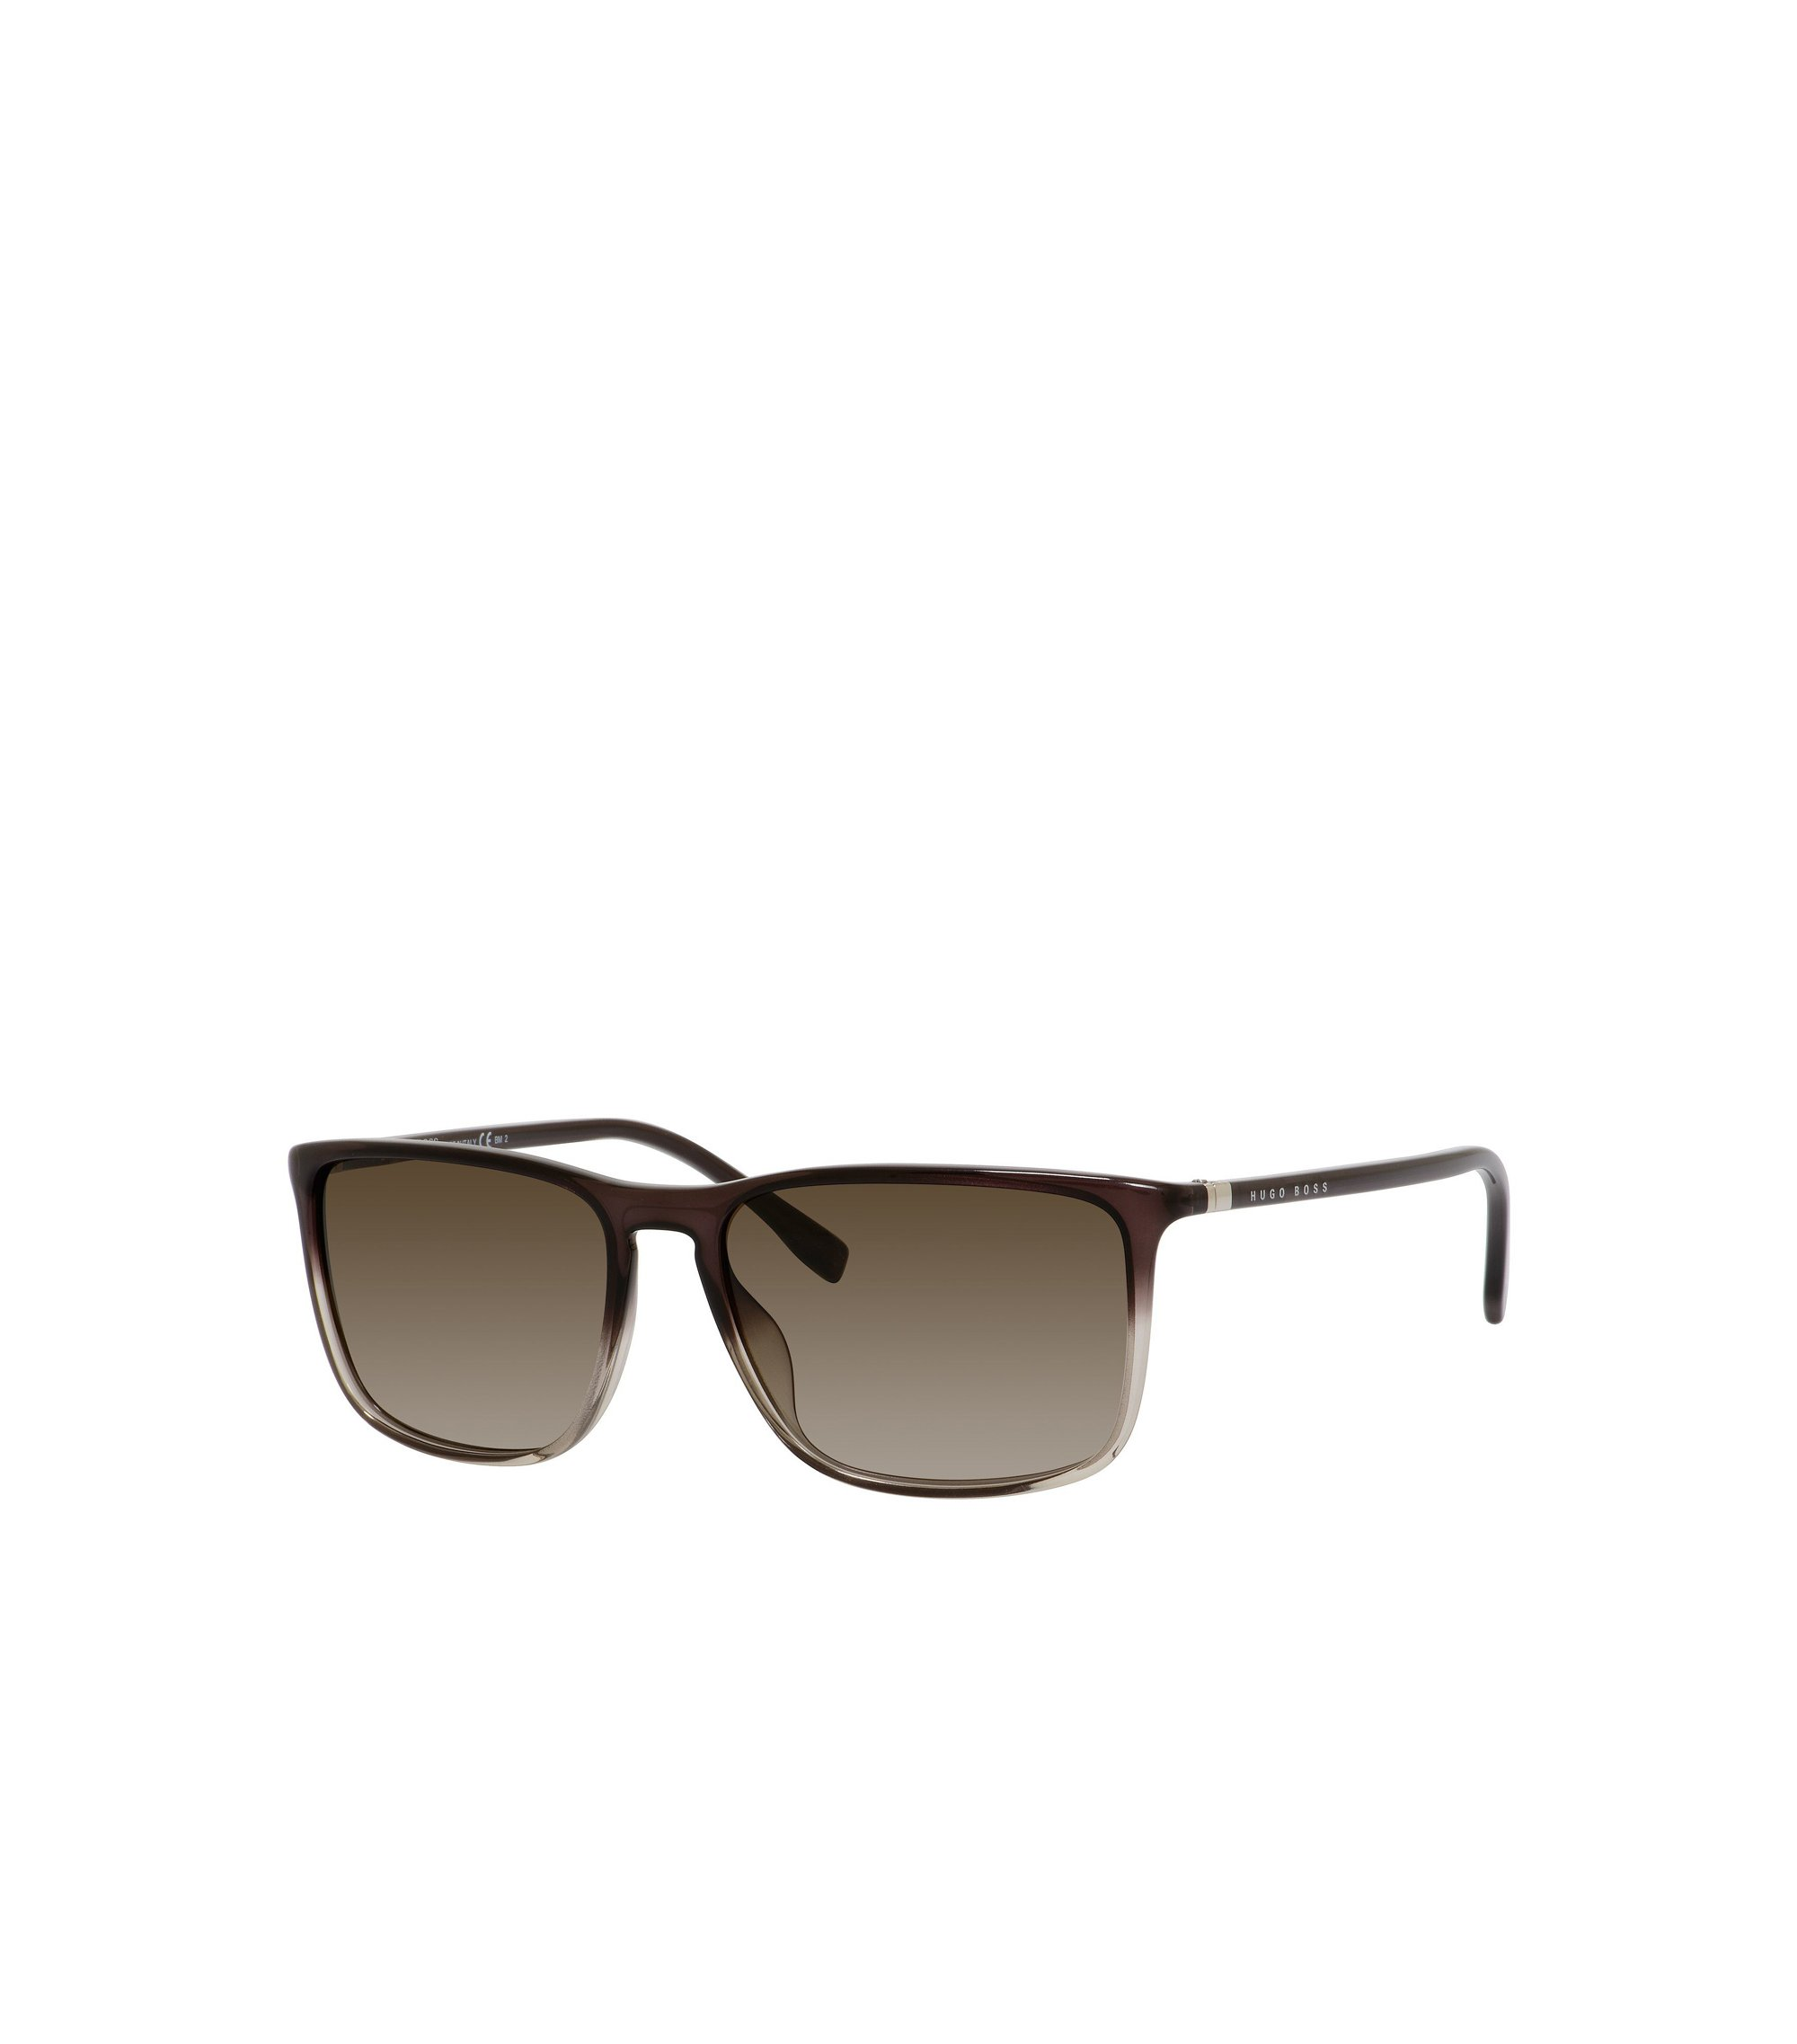 Gradient Lens Rectangular Sunglasses | BOSS 0665S, Assorted-Pre-Pack